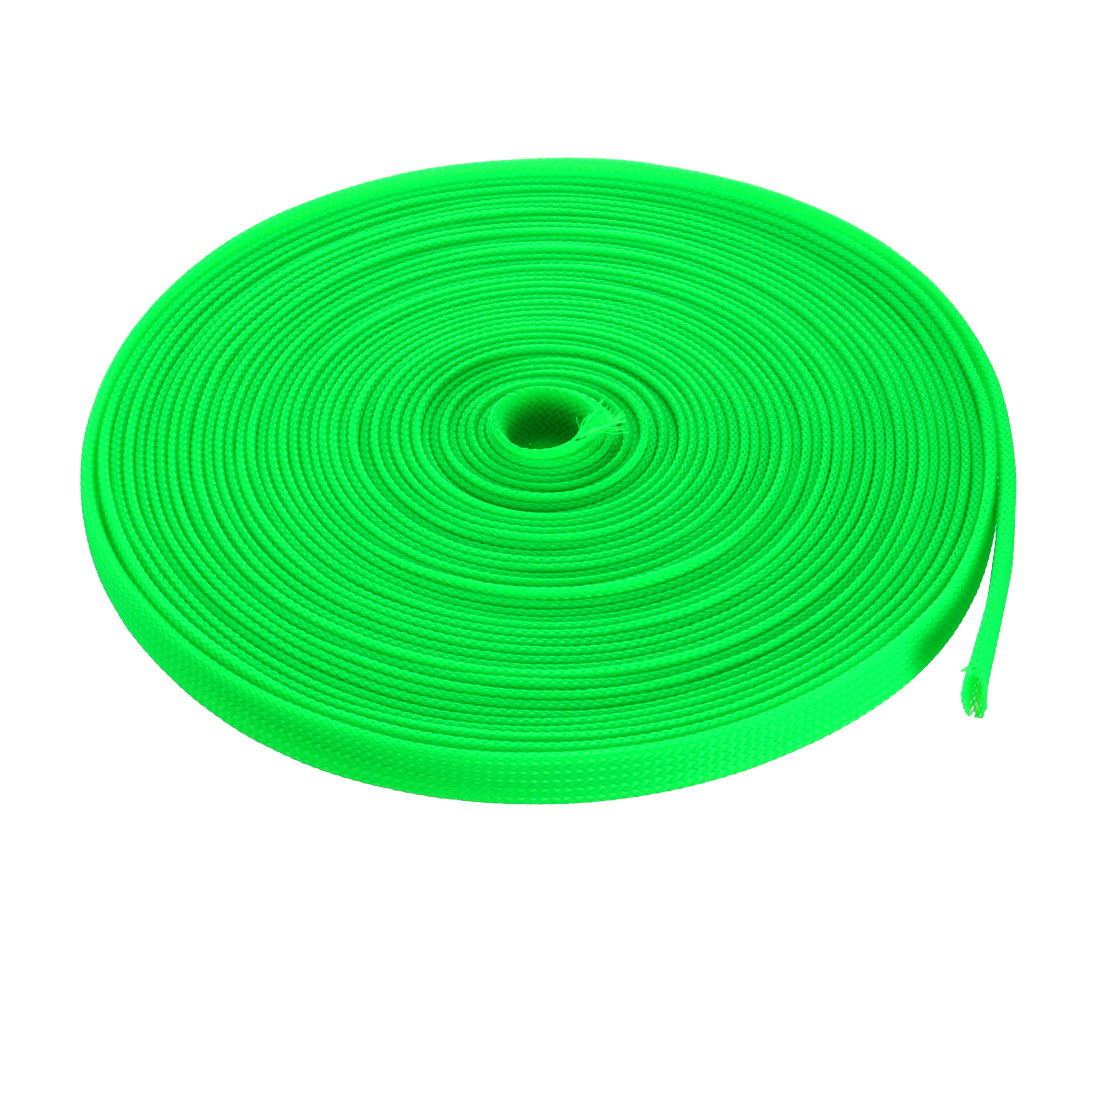 8mm Dia Tight PET Sleeving Cable Wrap Sheath Fluorescent Green 32Ft